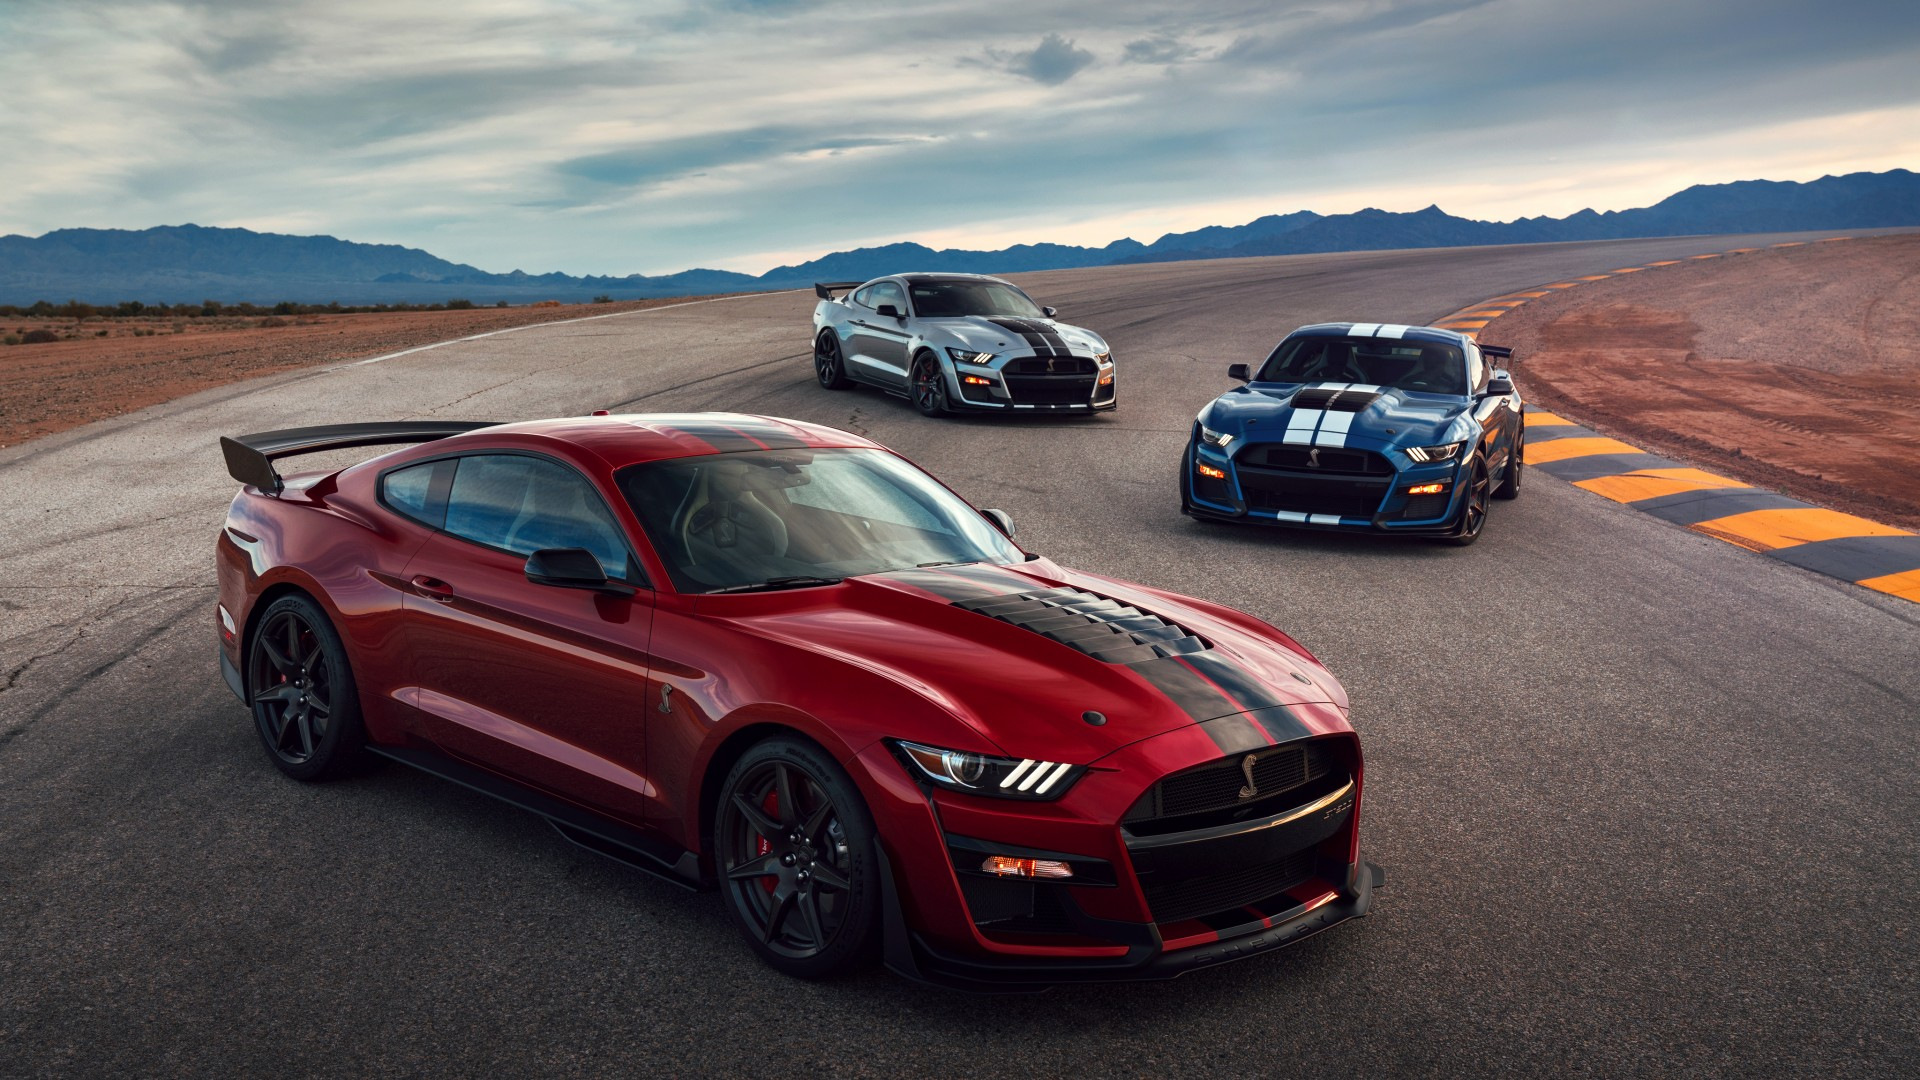 2020 ford mustang shelby gt500 4k 3 wallpaper hd car wallpapers id 11889. Black Bedroom Furniture Sets. Home Design Ideas